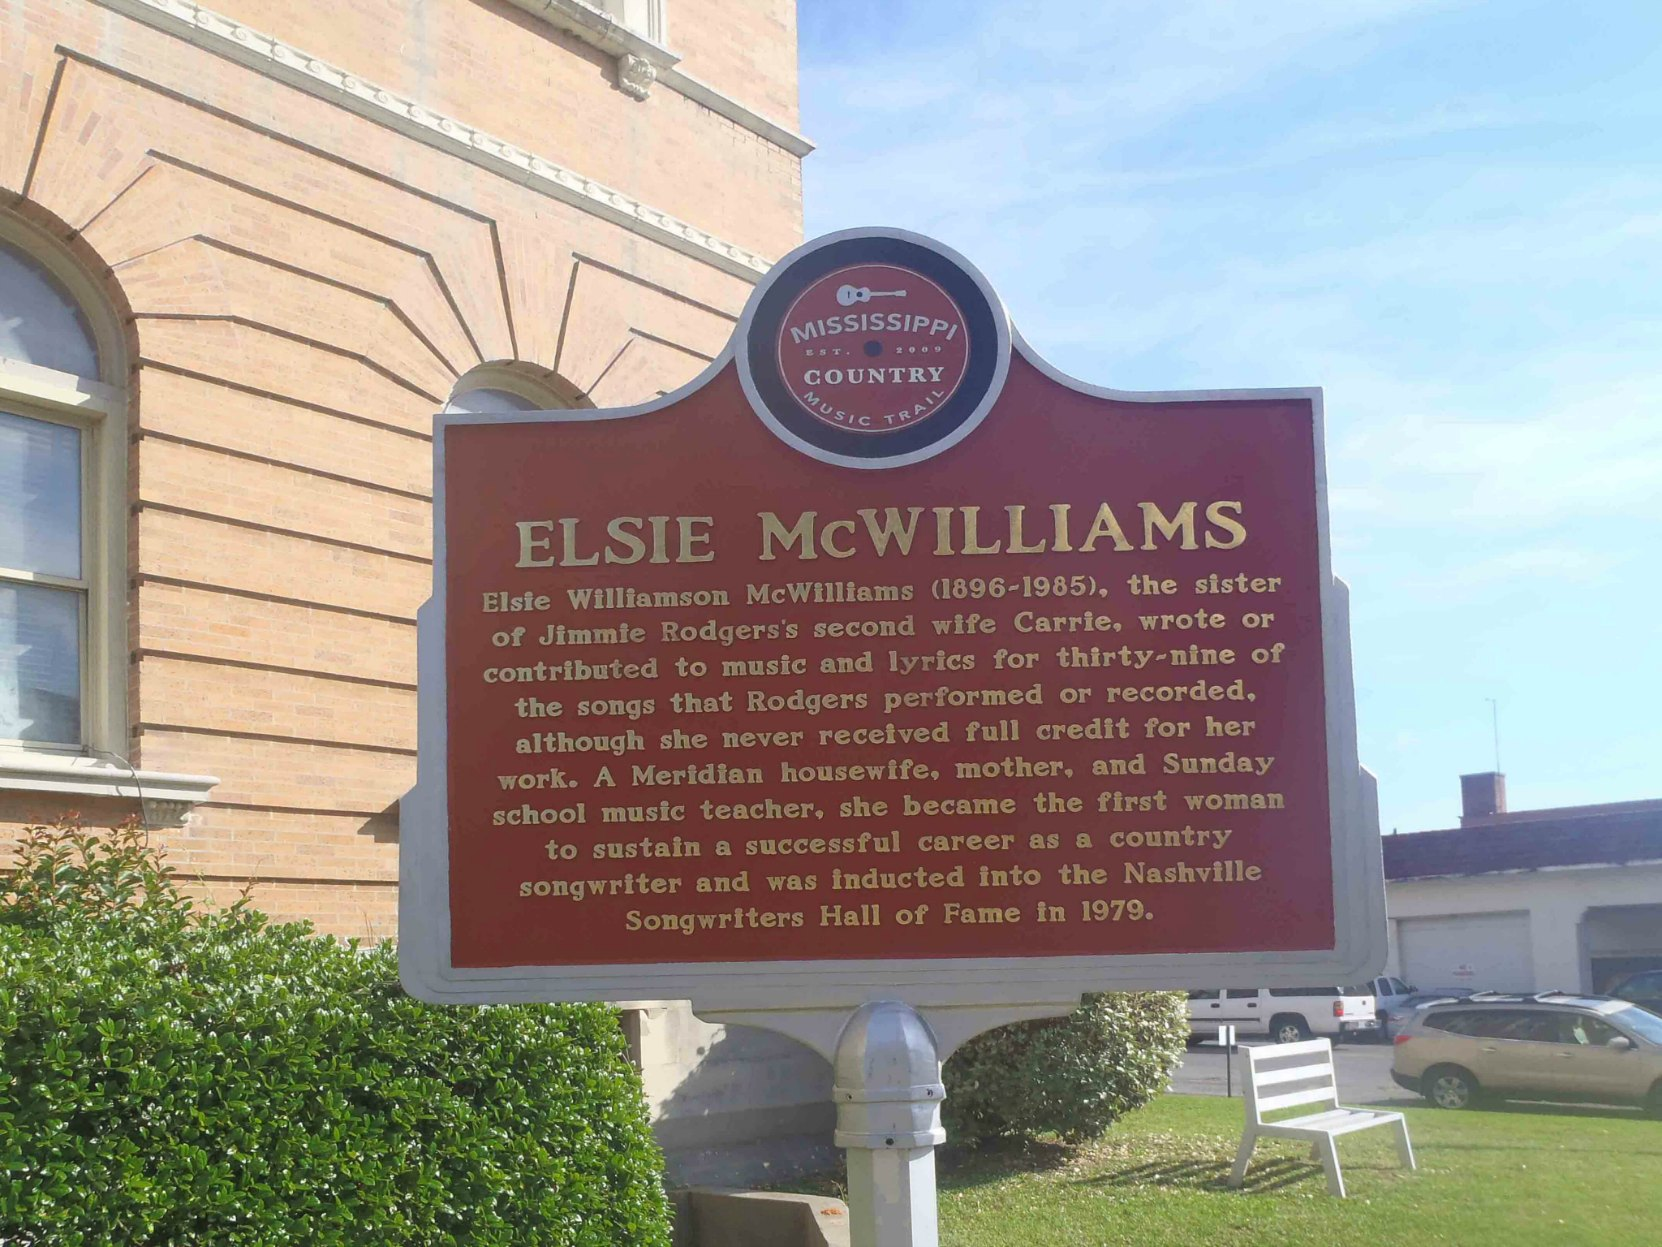 Mississippi Country Music Trail marker commemorating Elsie McWilliams, Meridian, Mississippi